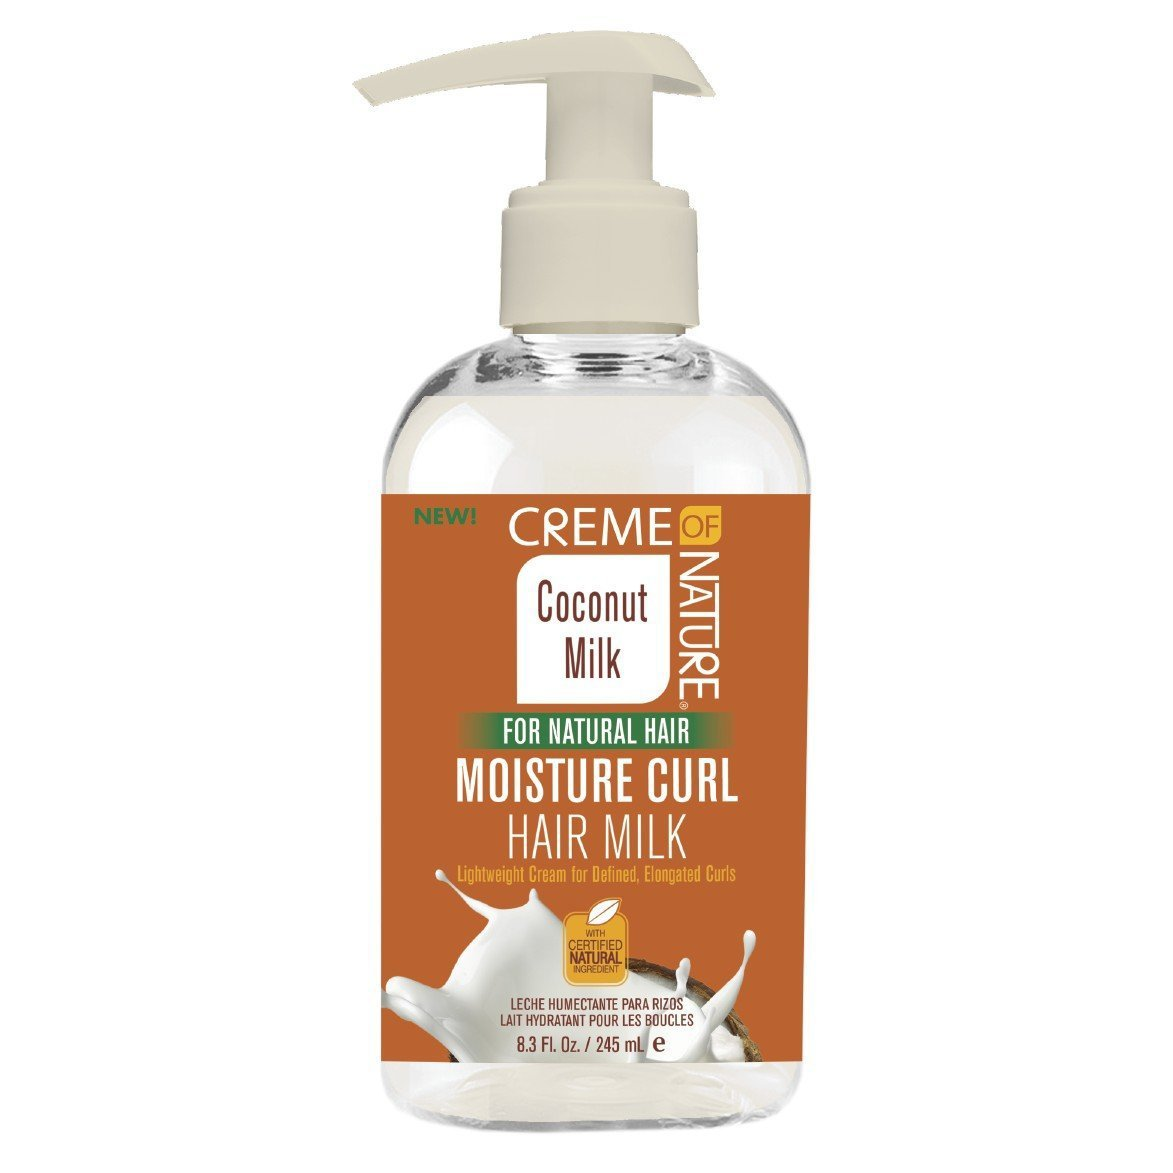 Creme Of Nature Coconut Milk Moisture Curl Hair Milk 8.3 Ounce (245ml)